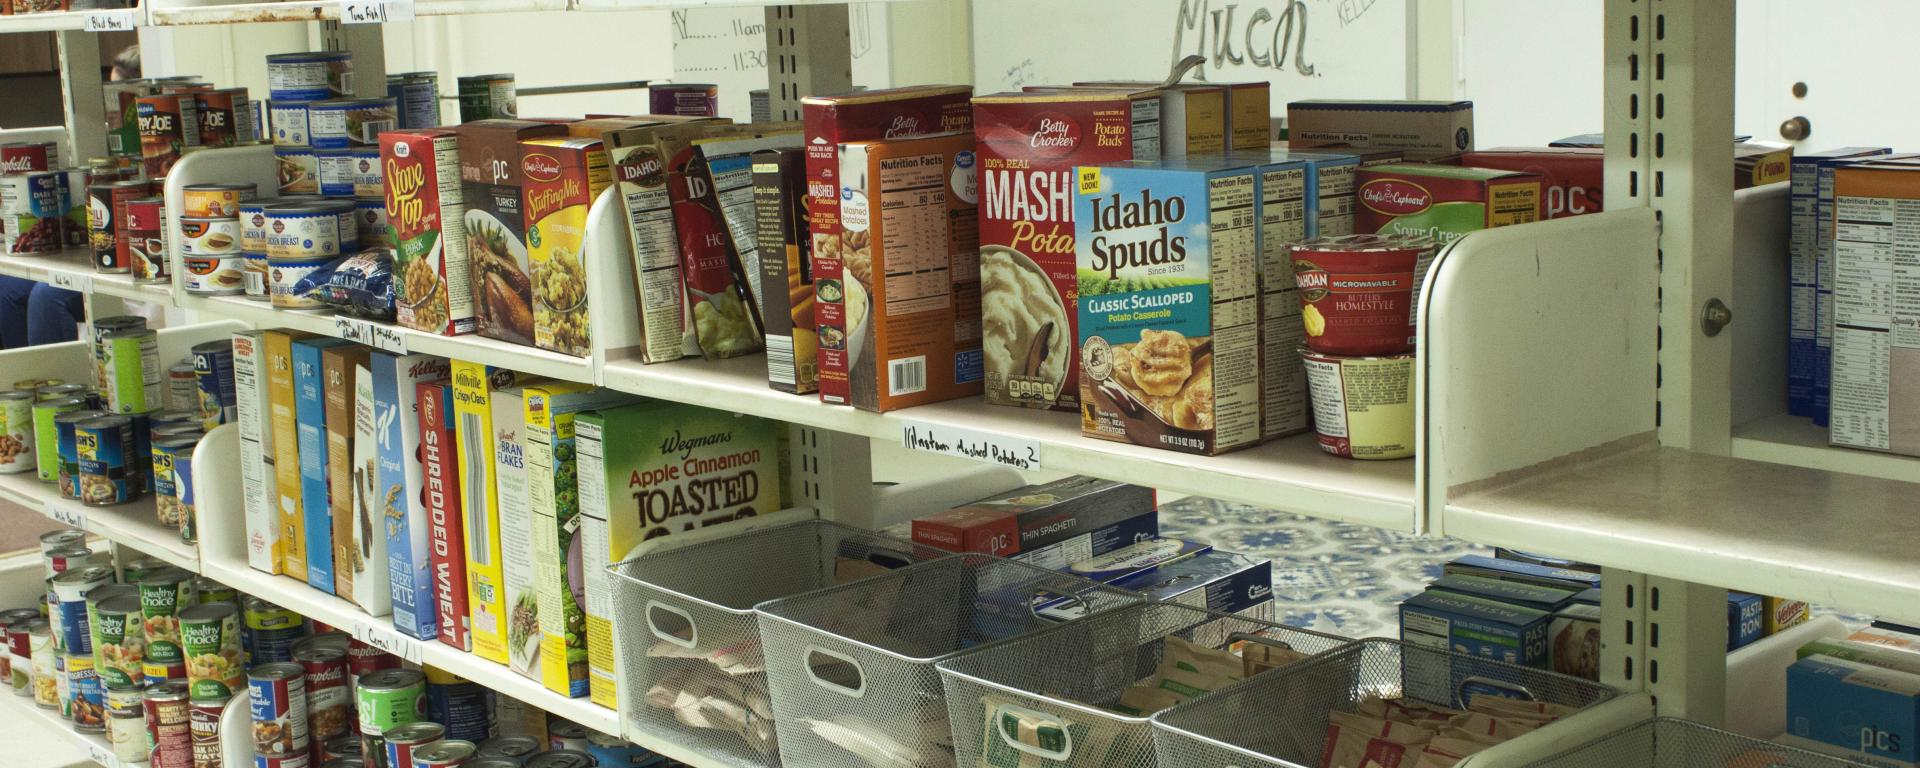 Image of shelf with various canned food items